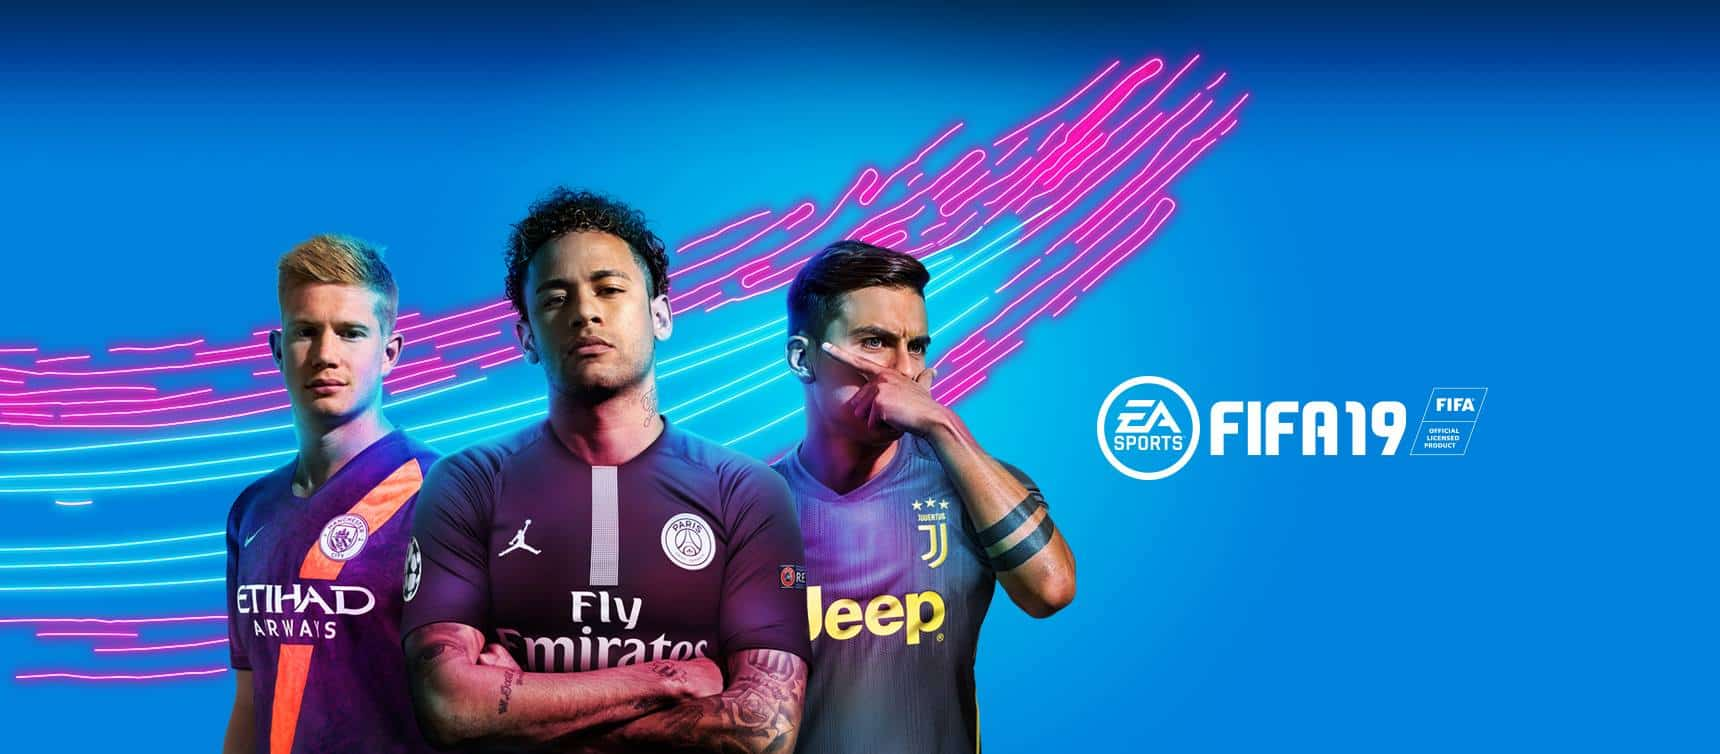 EA Removes Cristiano Ronaldo From FIFA 19 Cover After Rape Accusations